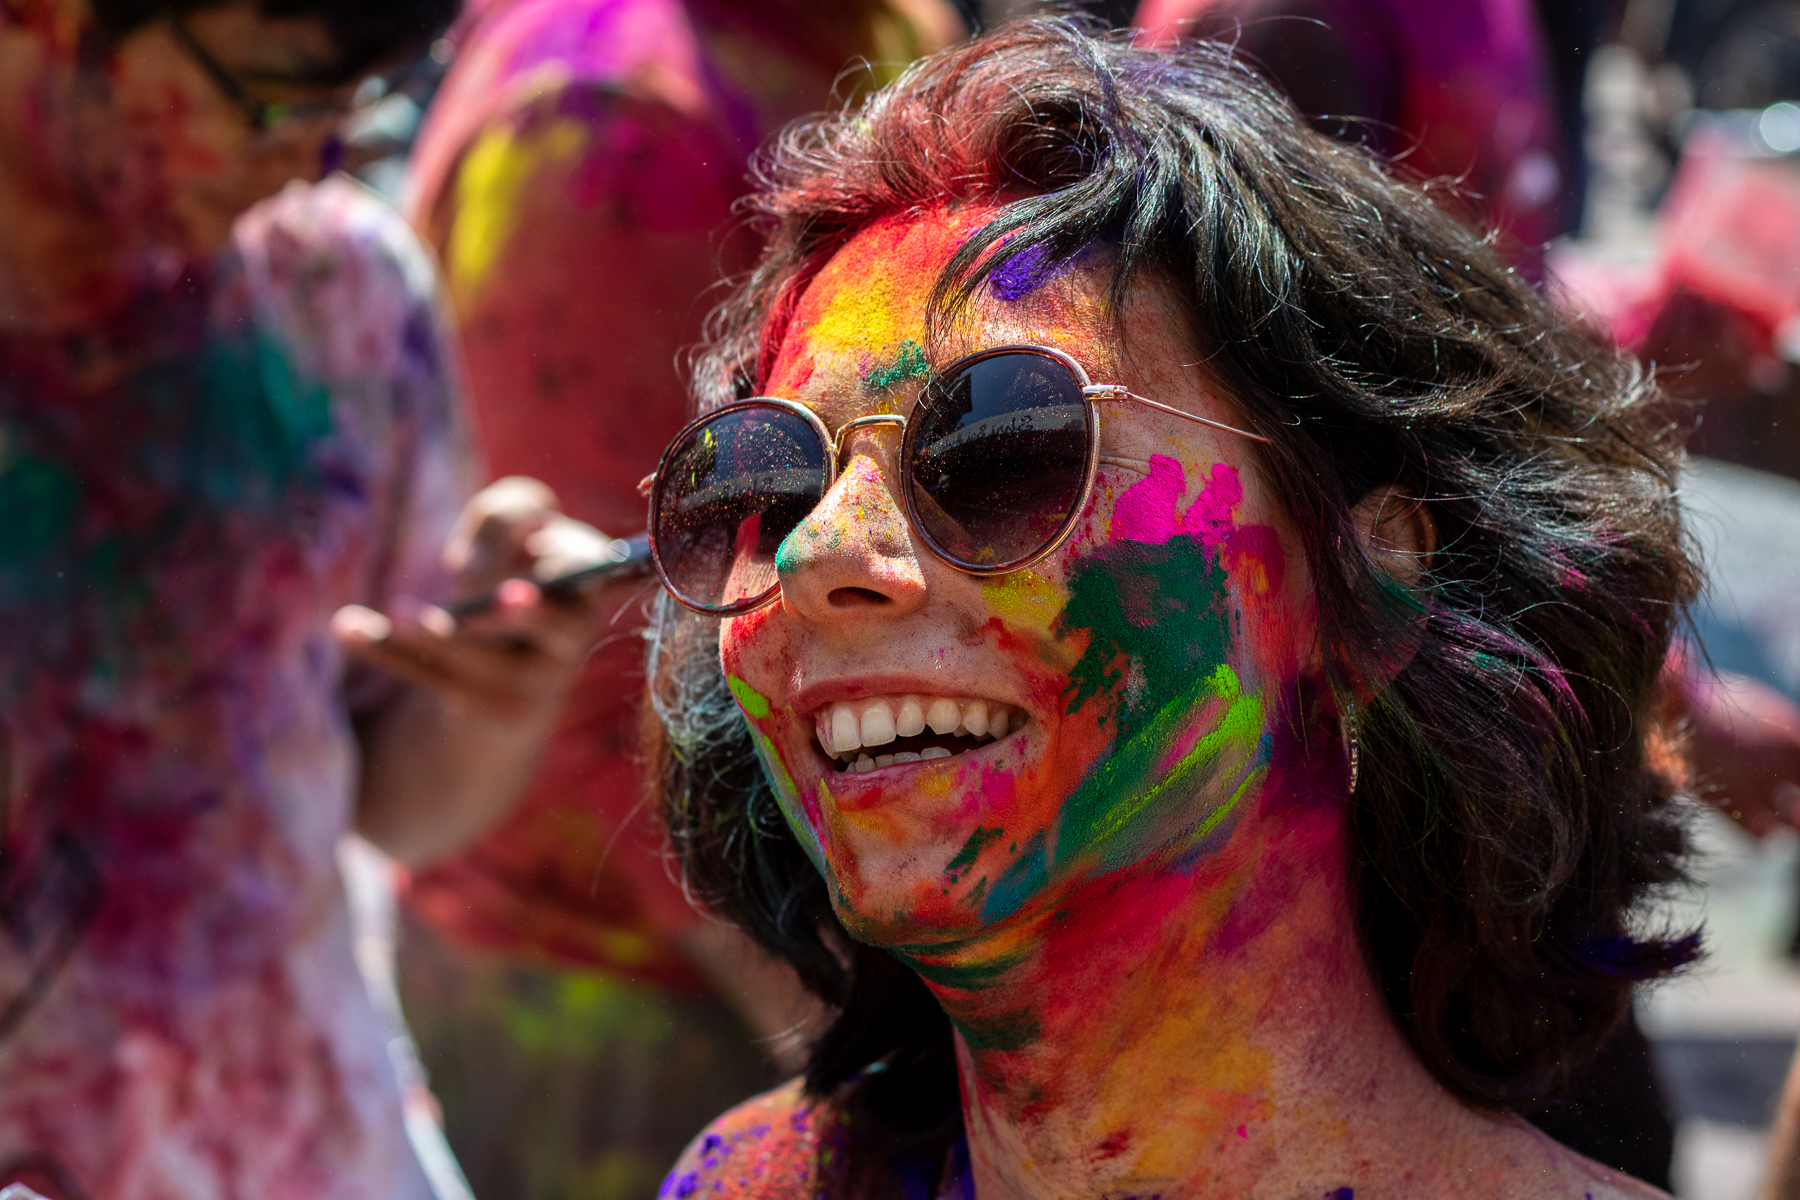 Colorful and happy faces at the Holi Festival in Rishikesh. The happy partying could help the virus spread faster.